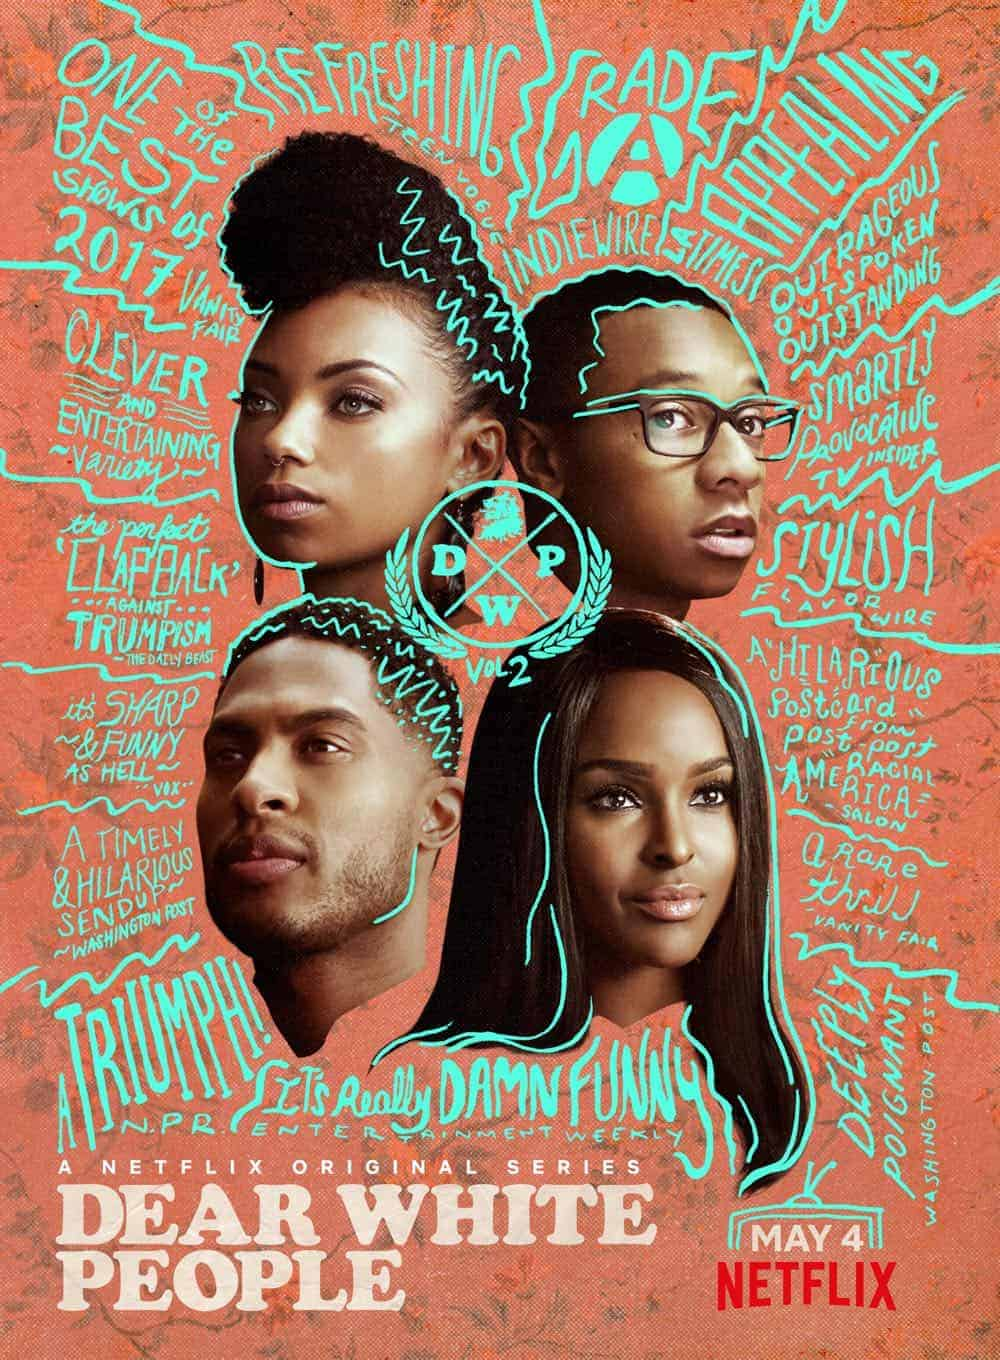 Dear-White-People-Season-2-Poster-Key-Art-Netflix